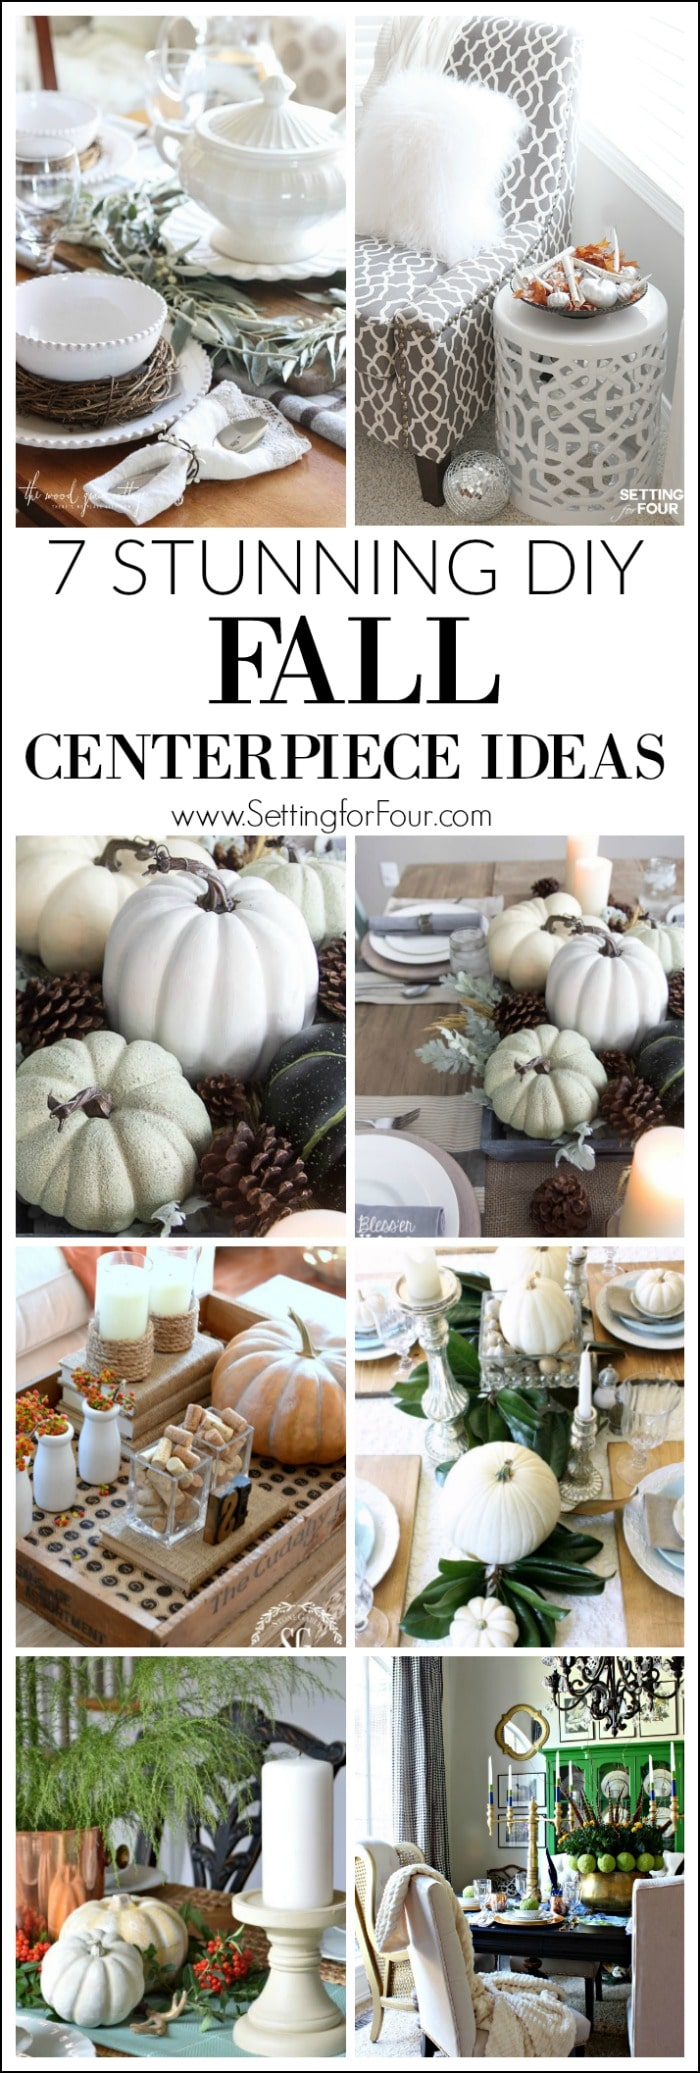 See 7 Stunning Fall Centerpiece Ideas to decorate your home for autumn! 7 beautiful easy to make centerpiece ideas using pumpkins, gourds, feathers and fall leaves for your dining table, end table and coffee table!